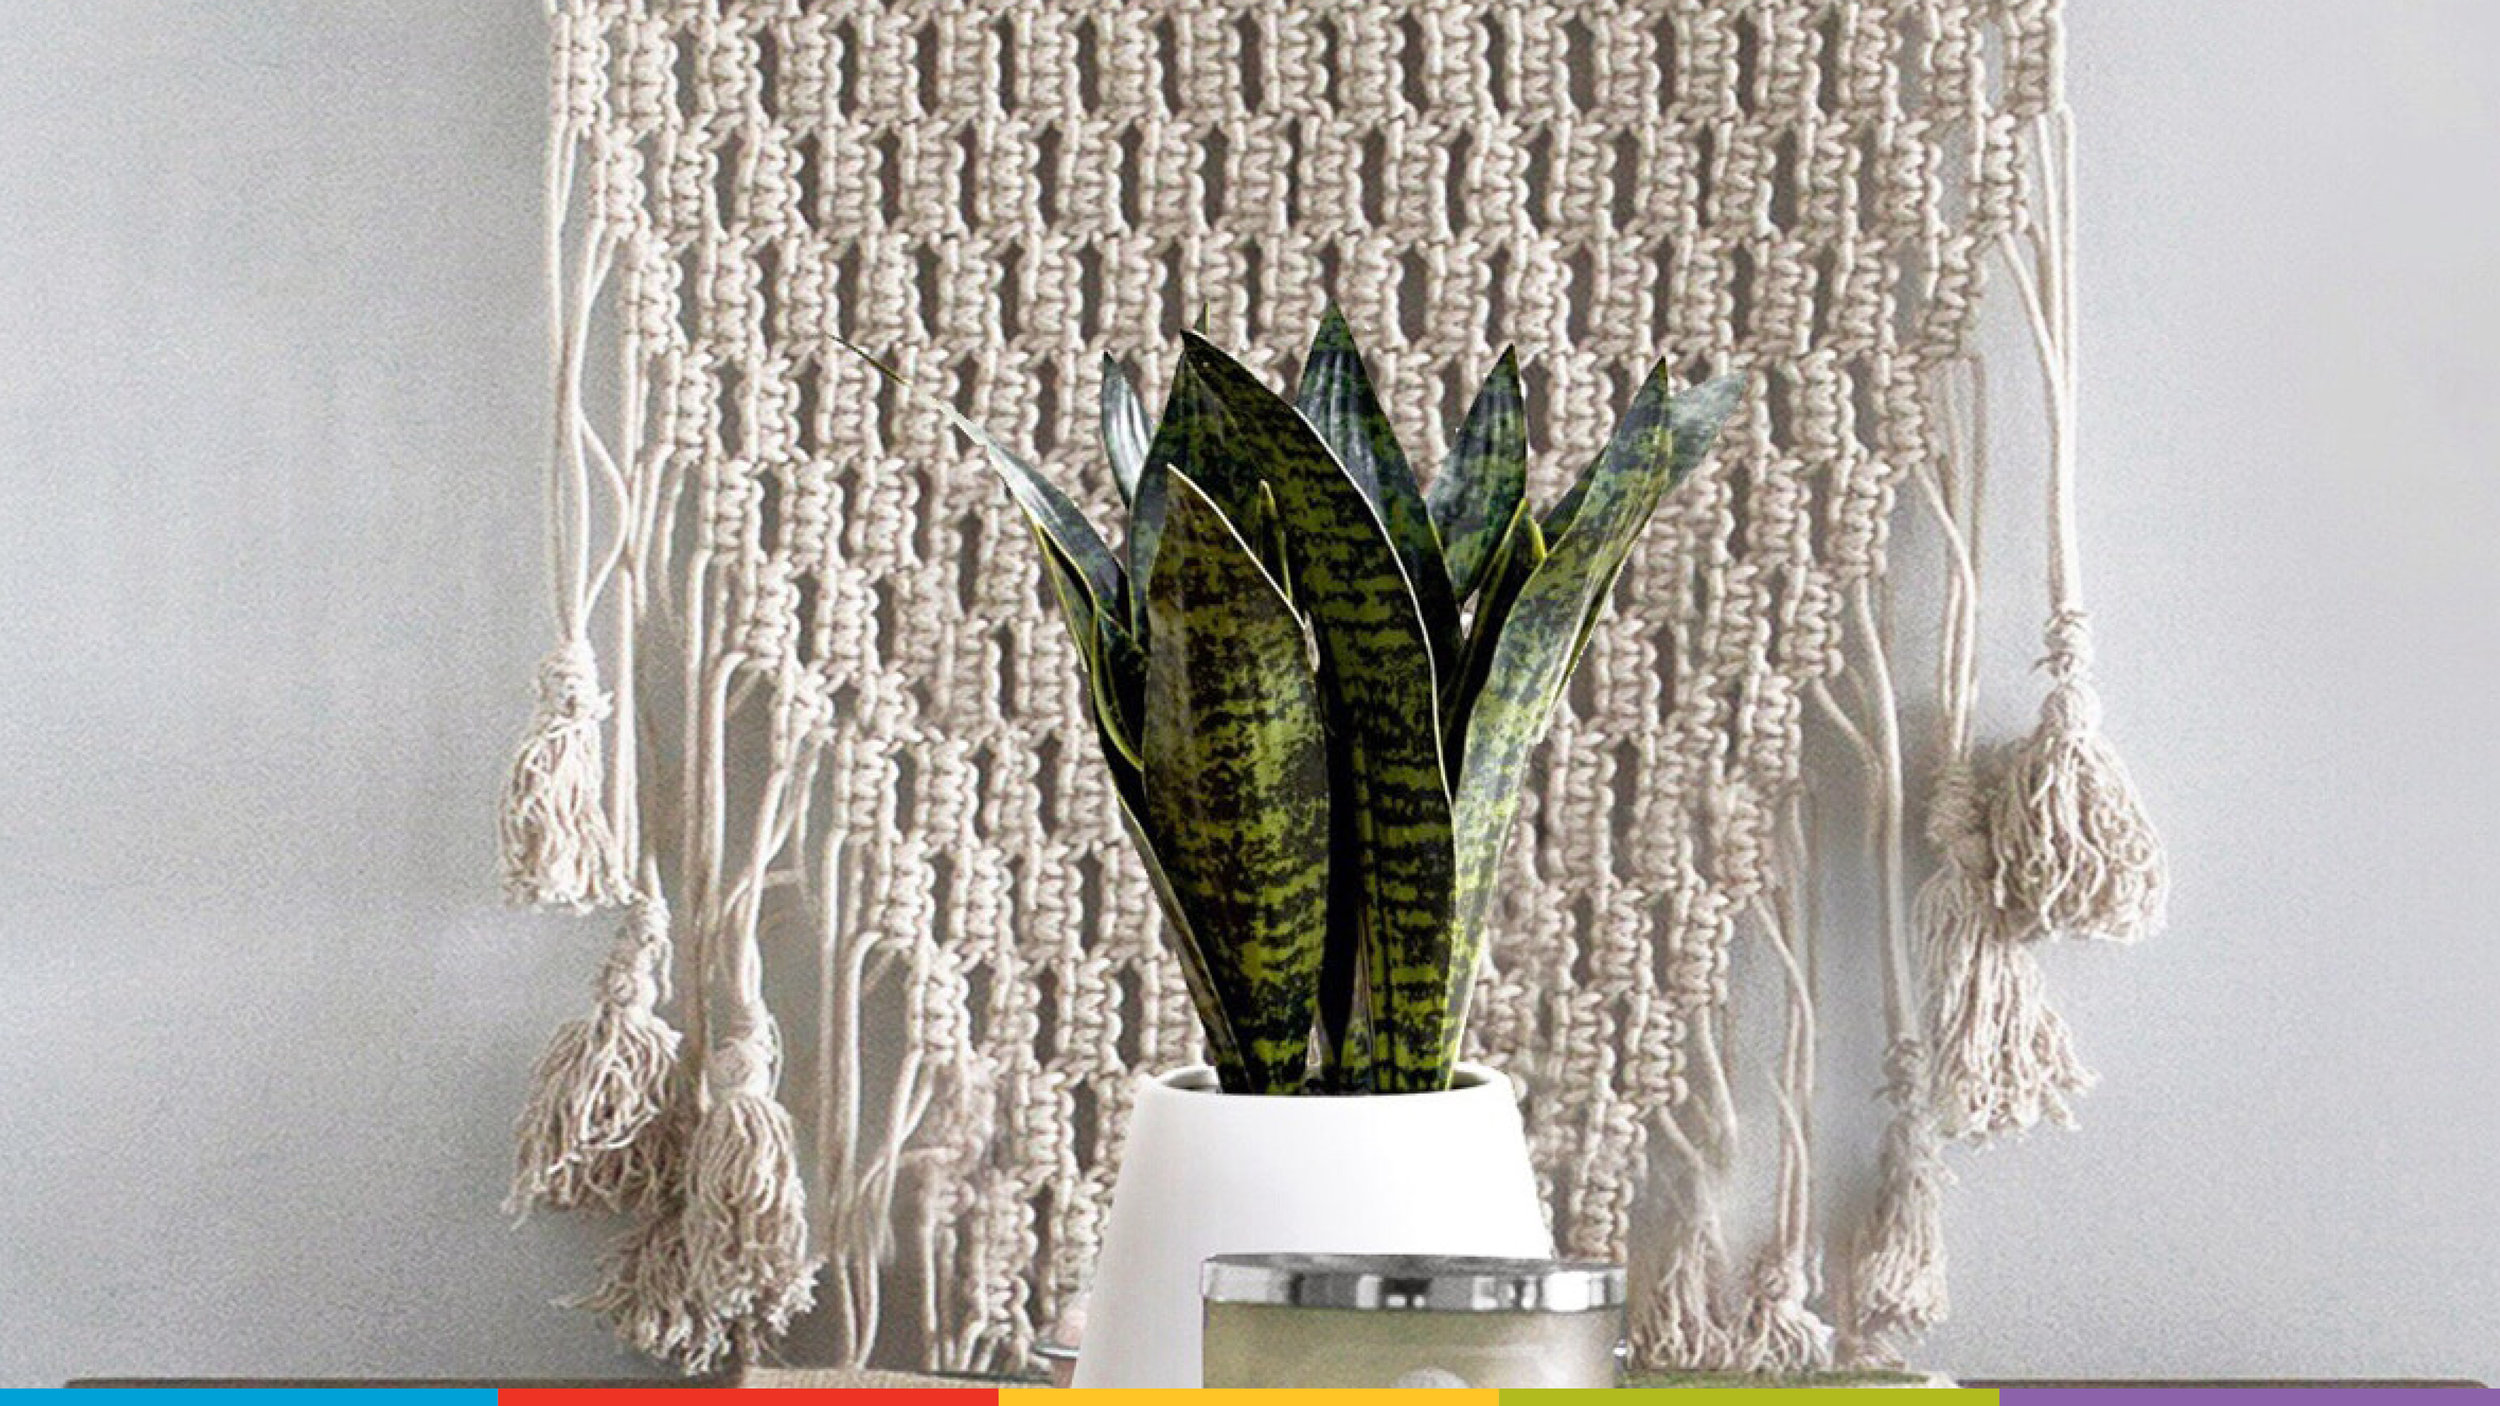 A wall hanging with a plant in the foreground.  Photo from Designecologist on Unsplash